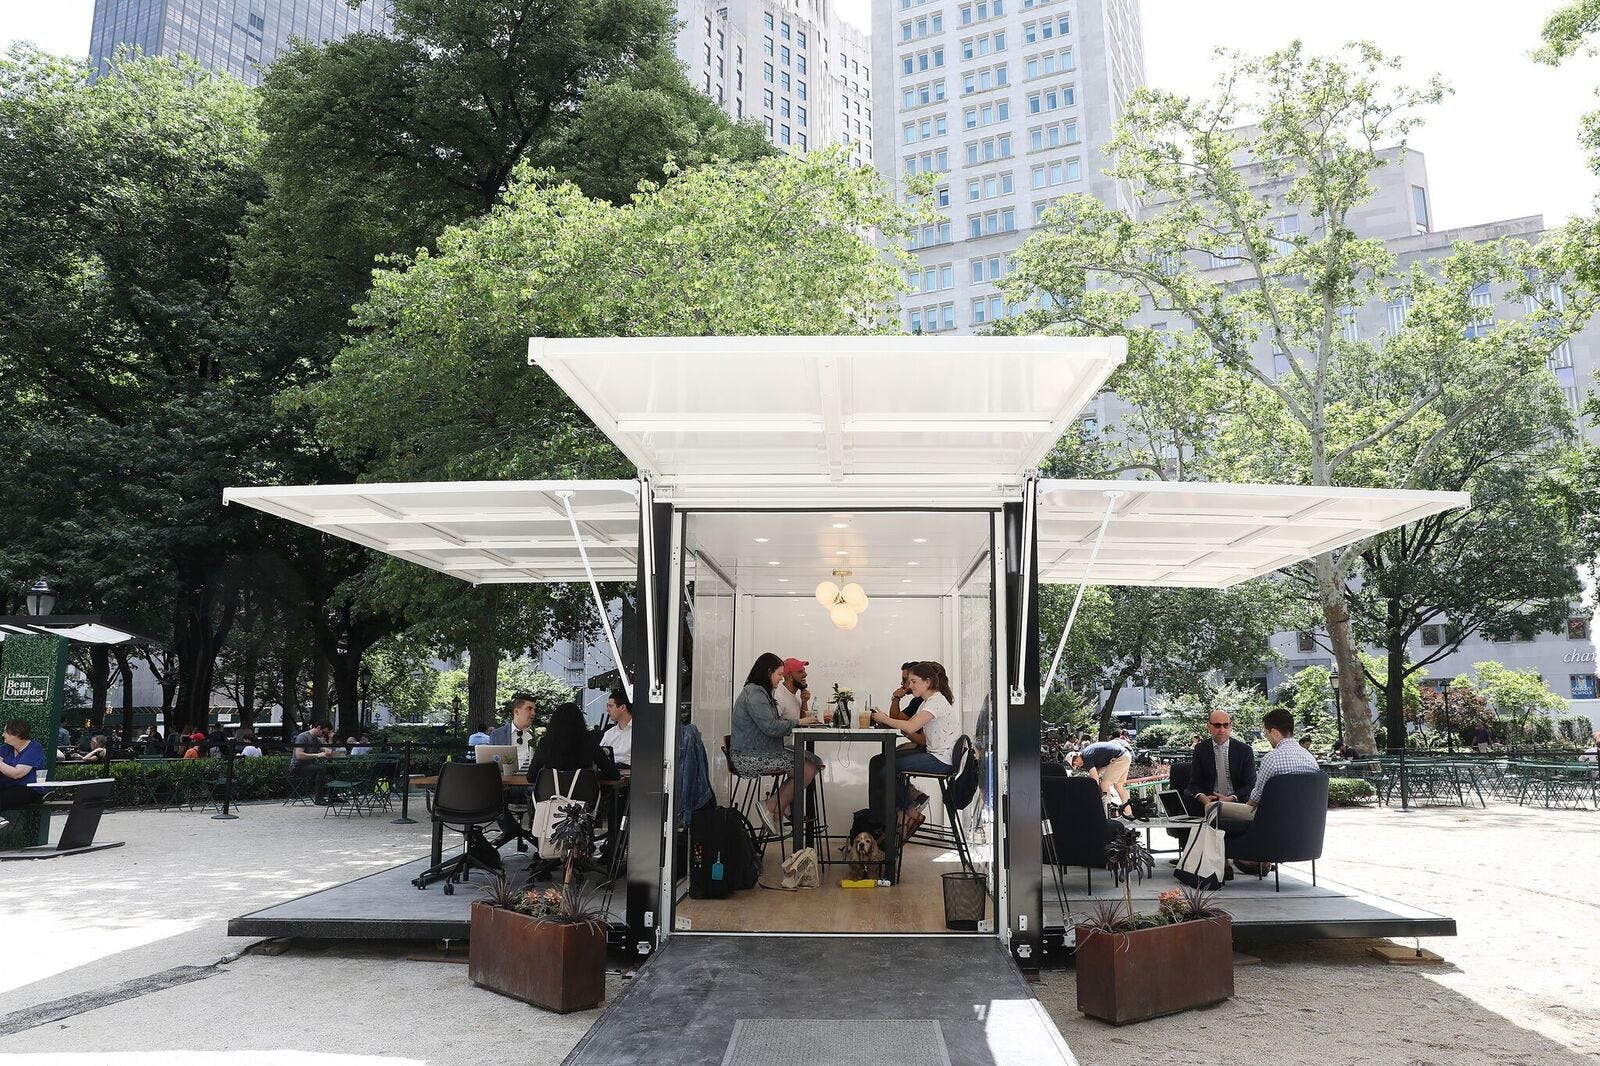 Delicieux Desk, Swivel Chair, Trees: Why Companies Are Moving The Office Outdoors